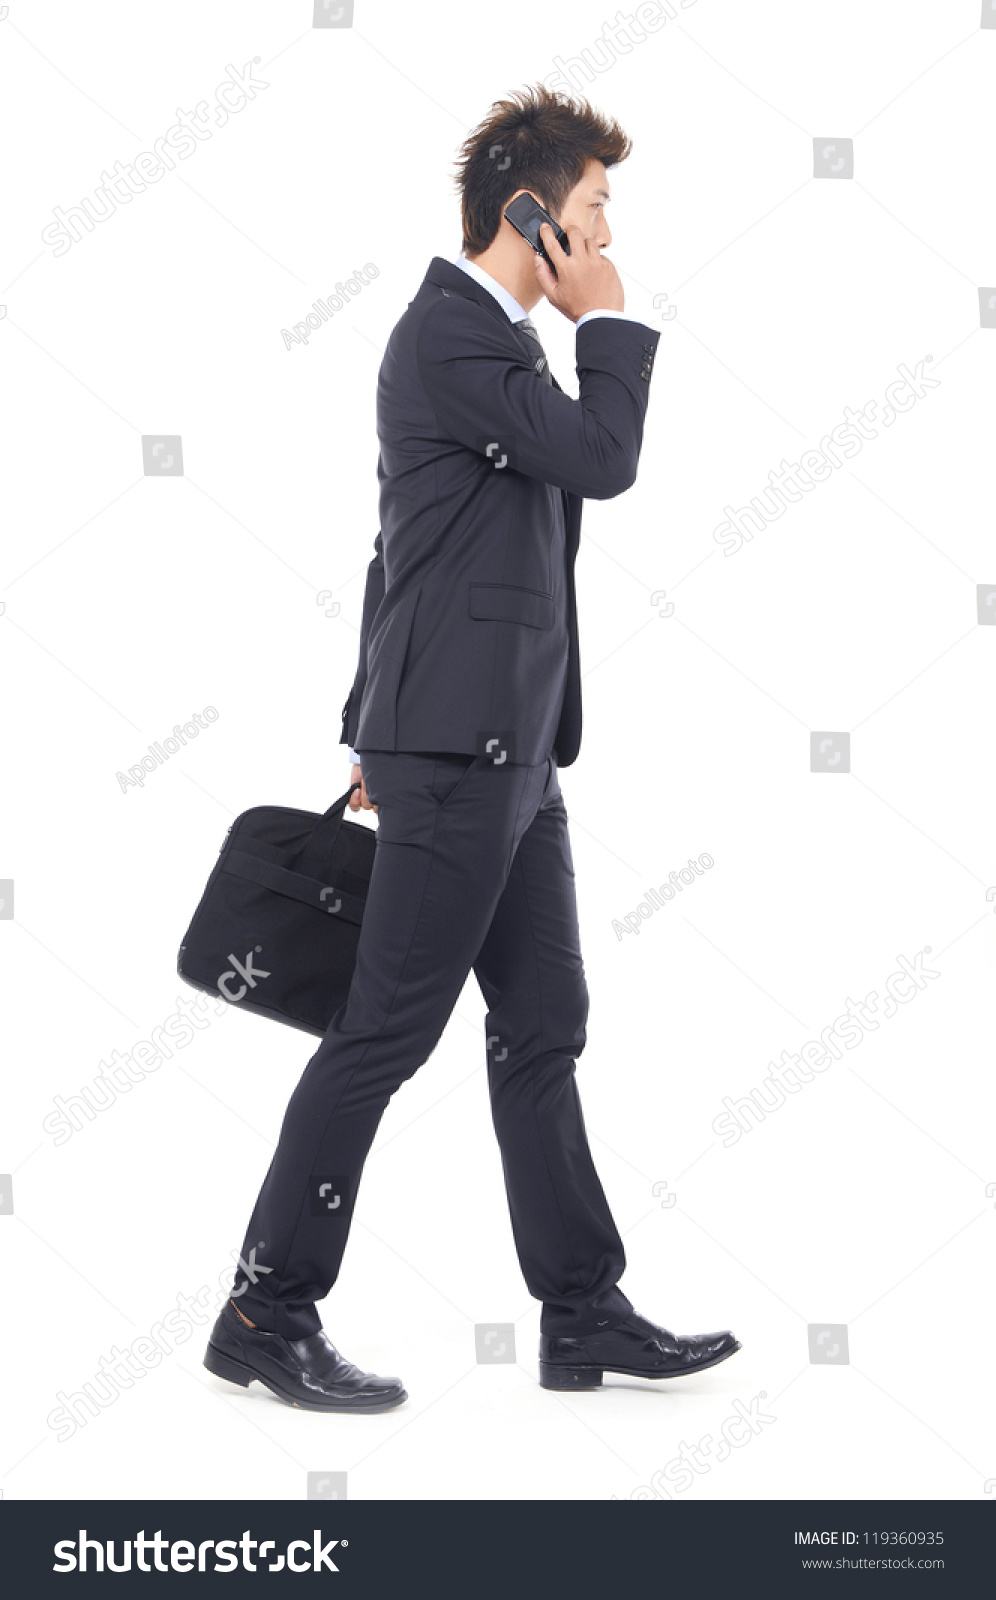 stock-photo-full-body-young-business-man-walking-carrying-a-suitcase-speaking-on-cellphone-119360935.jpg